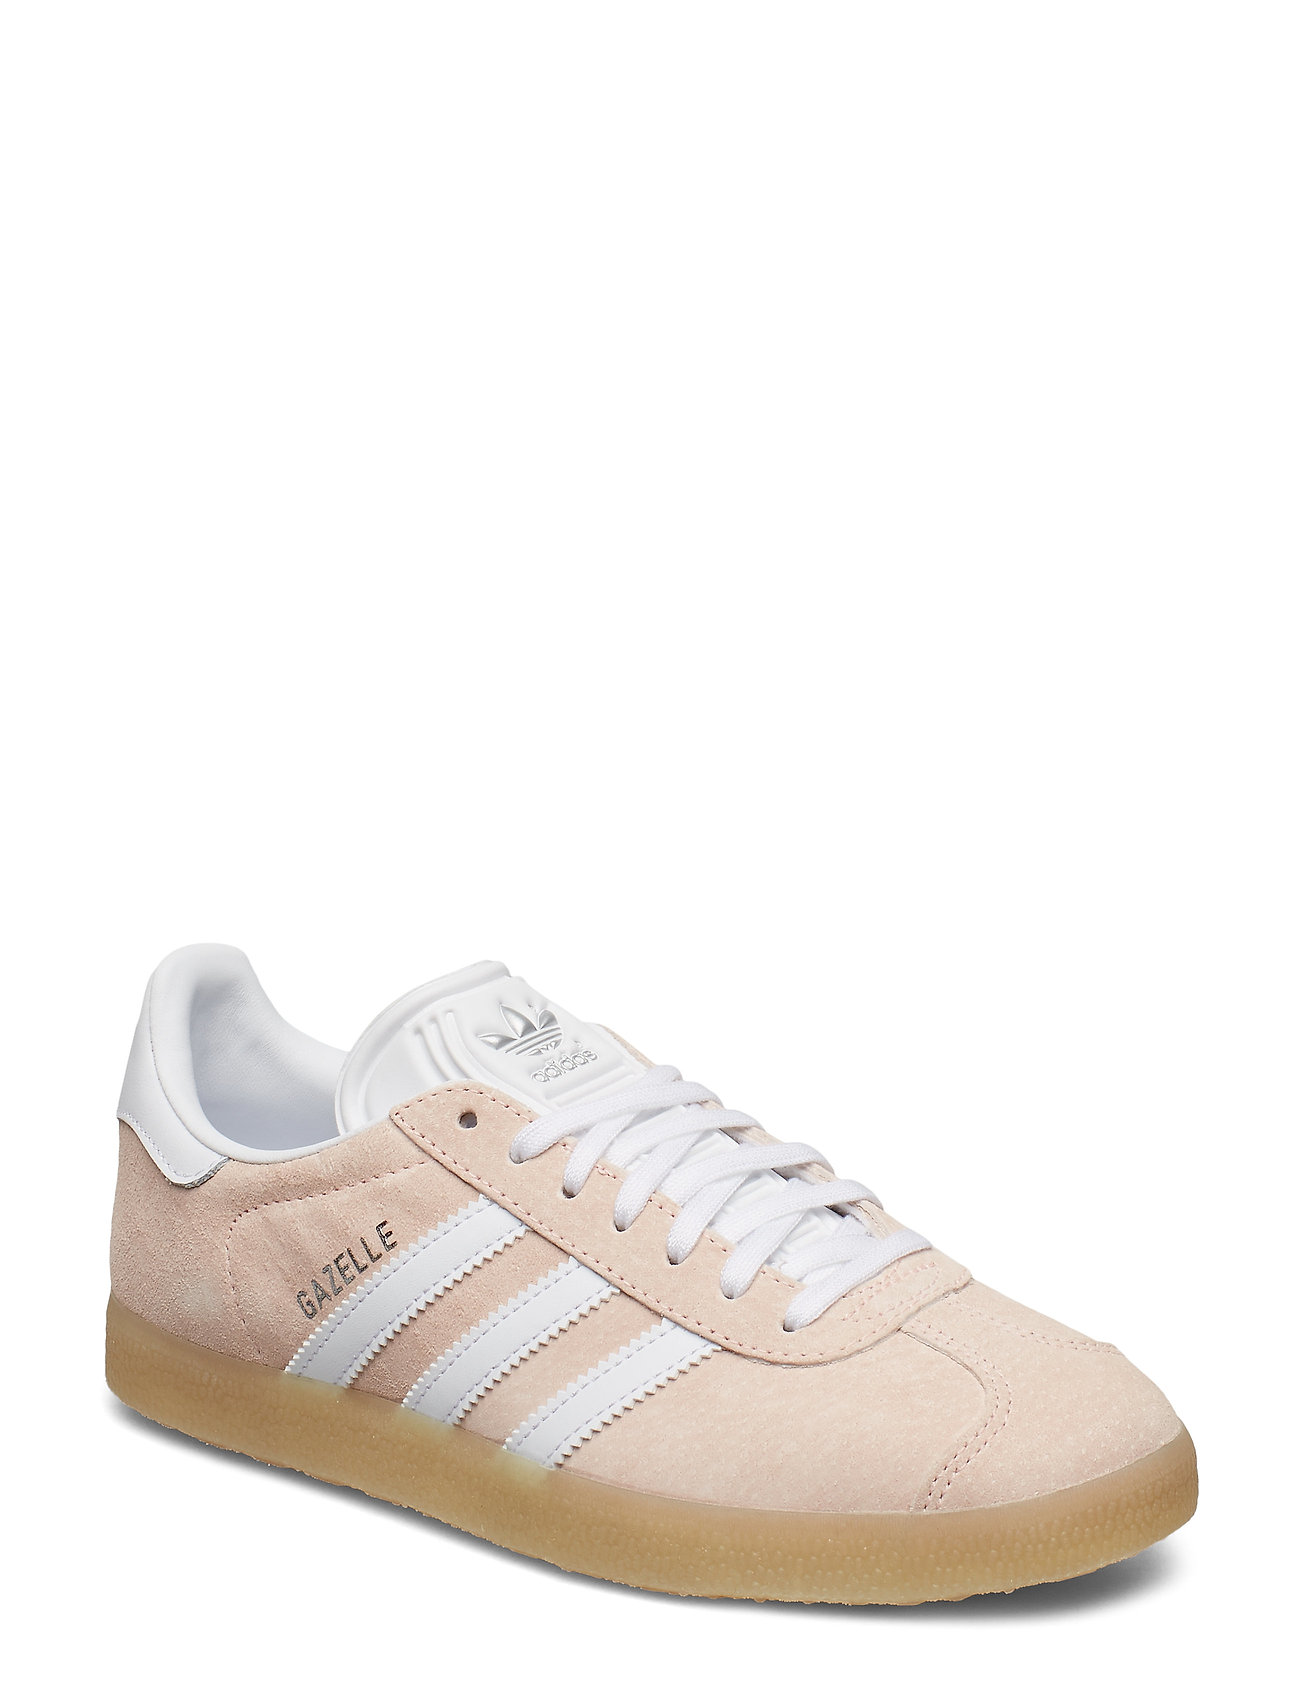 3002d2789 adidas sneakers from GBP 3   See the cheapest prices and offers on ...